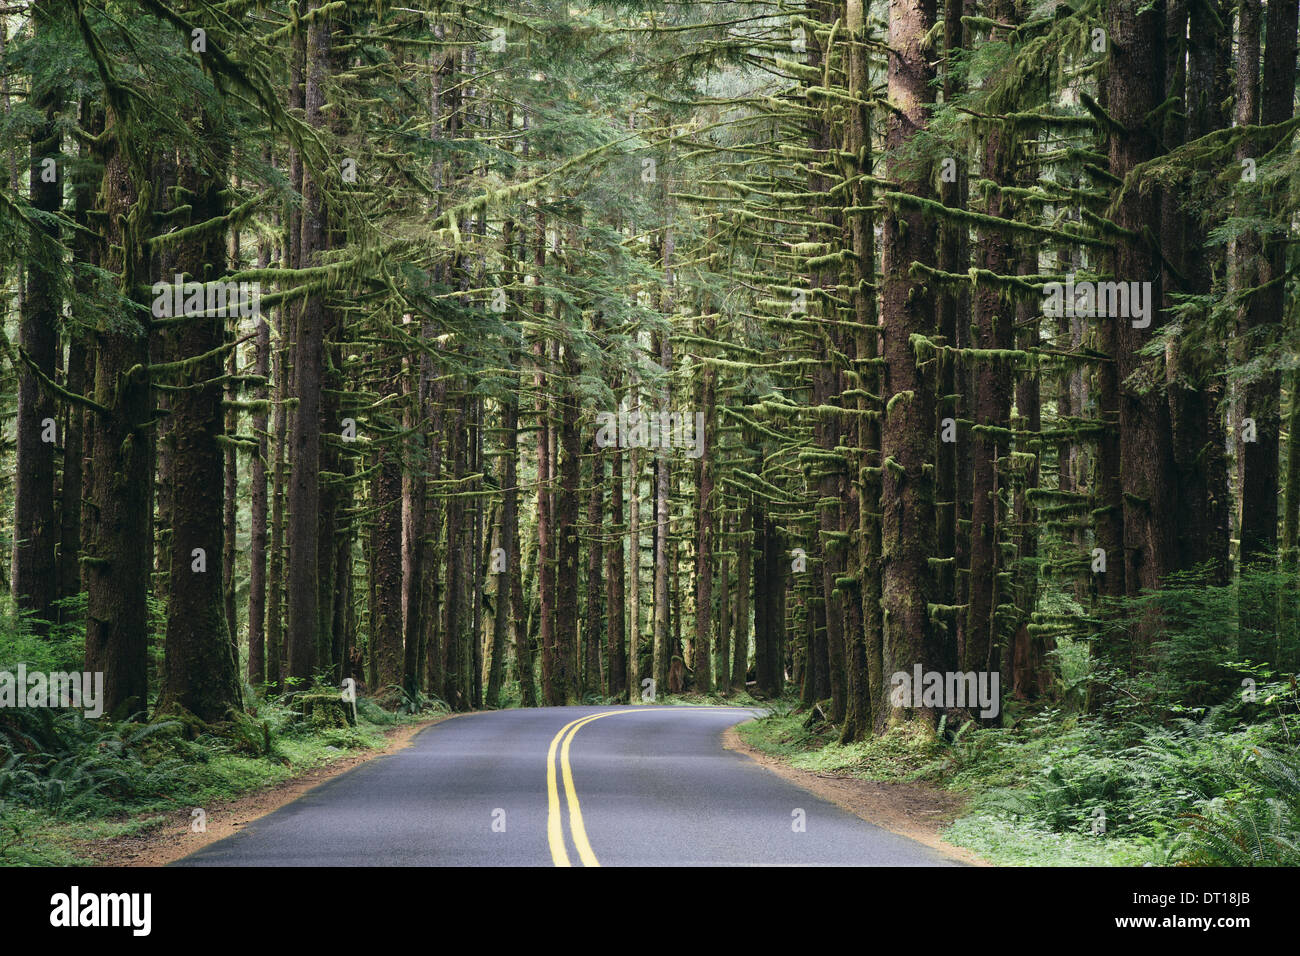 Olympic National Park Washington USA. Forêt pluviale luxuriante route Hoh Rainforest USA Photo Stock